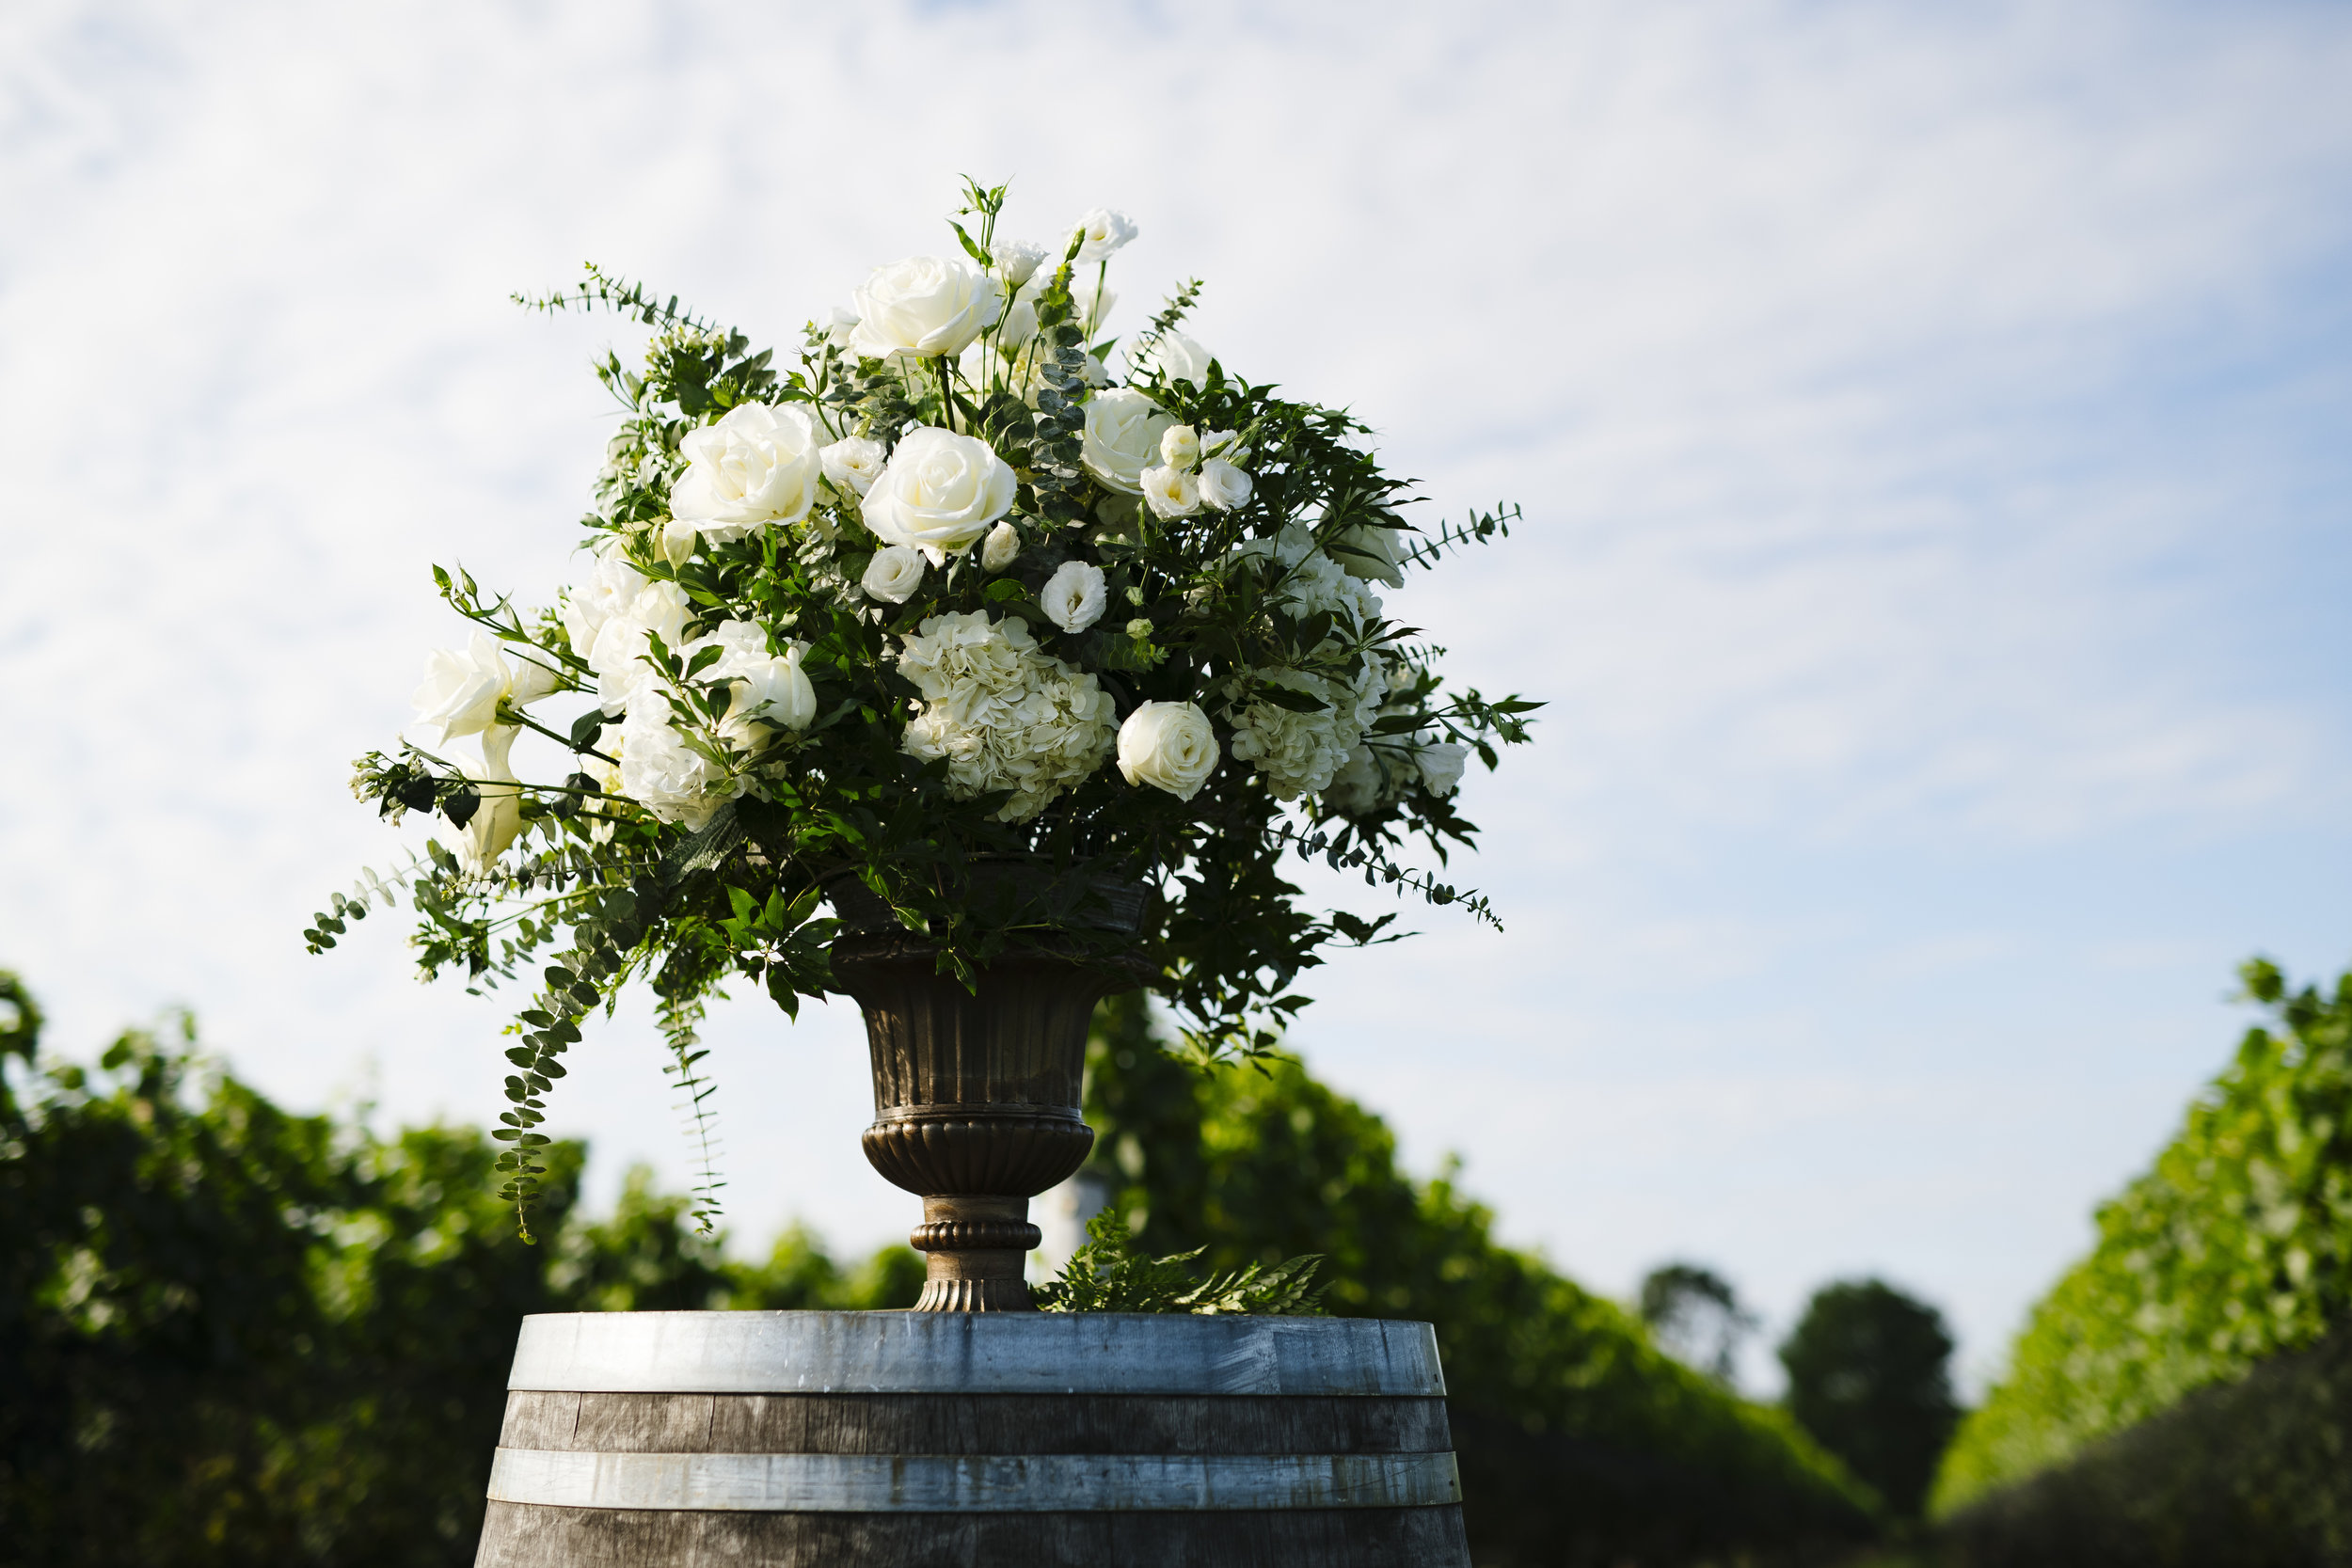 White and green ceremony floral arrangements on a rustic wine barrel at Jonathan Edwards Winery - Pearl Weddings & Events